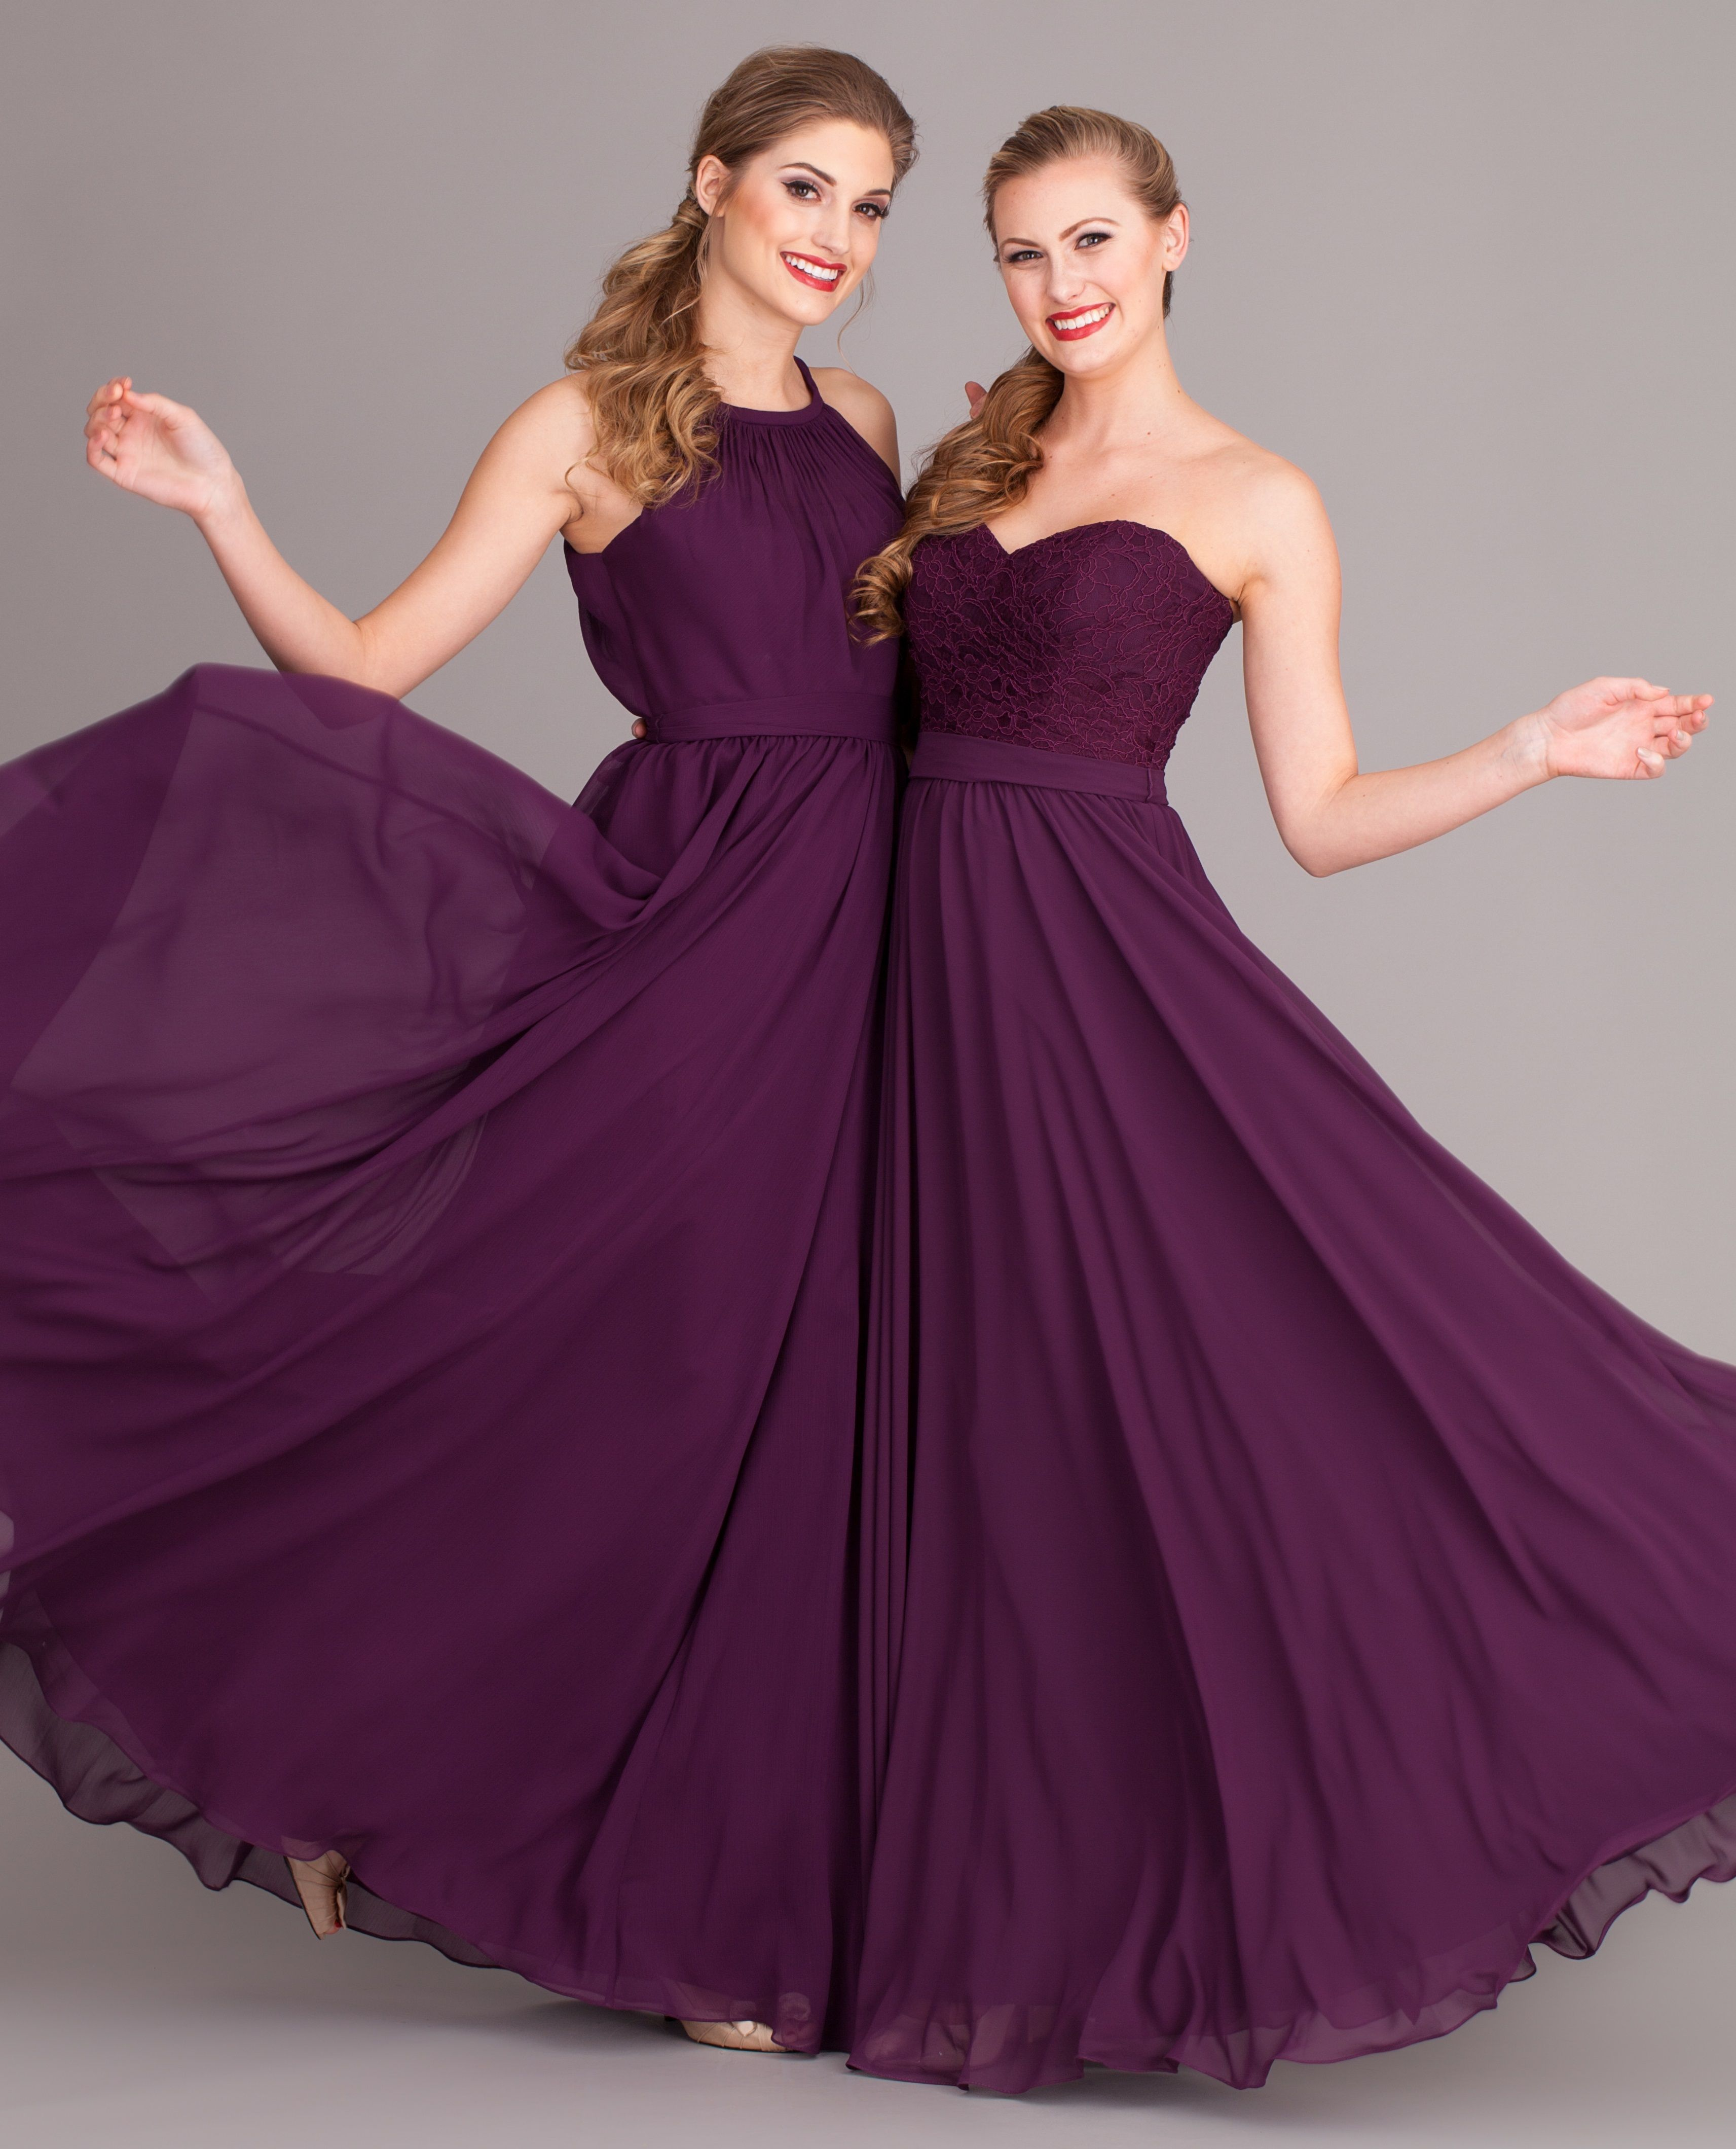 Eggplant purple is a rich and flattering bridesmaid dress color ...